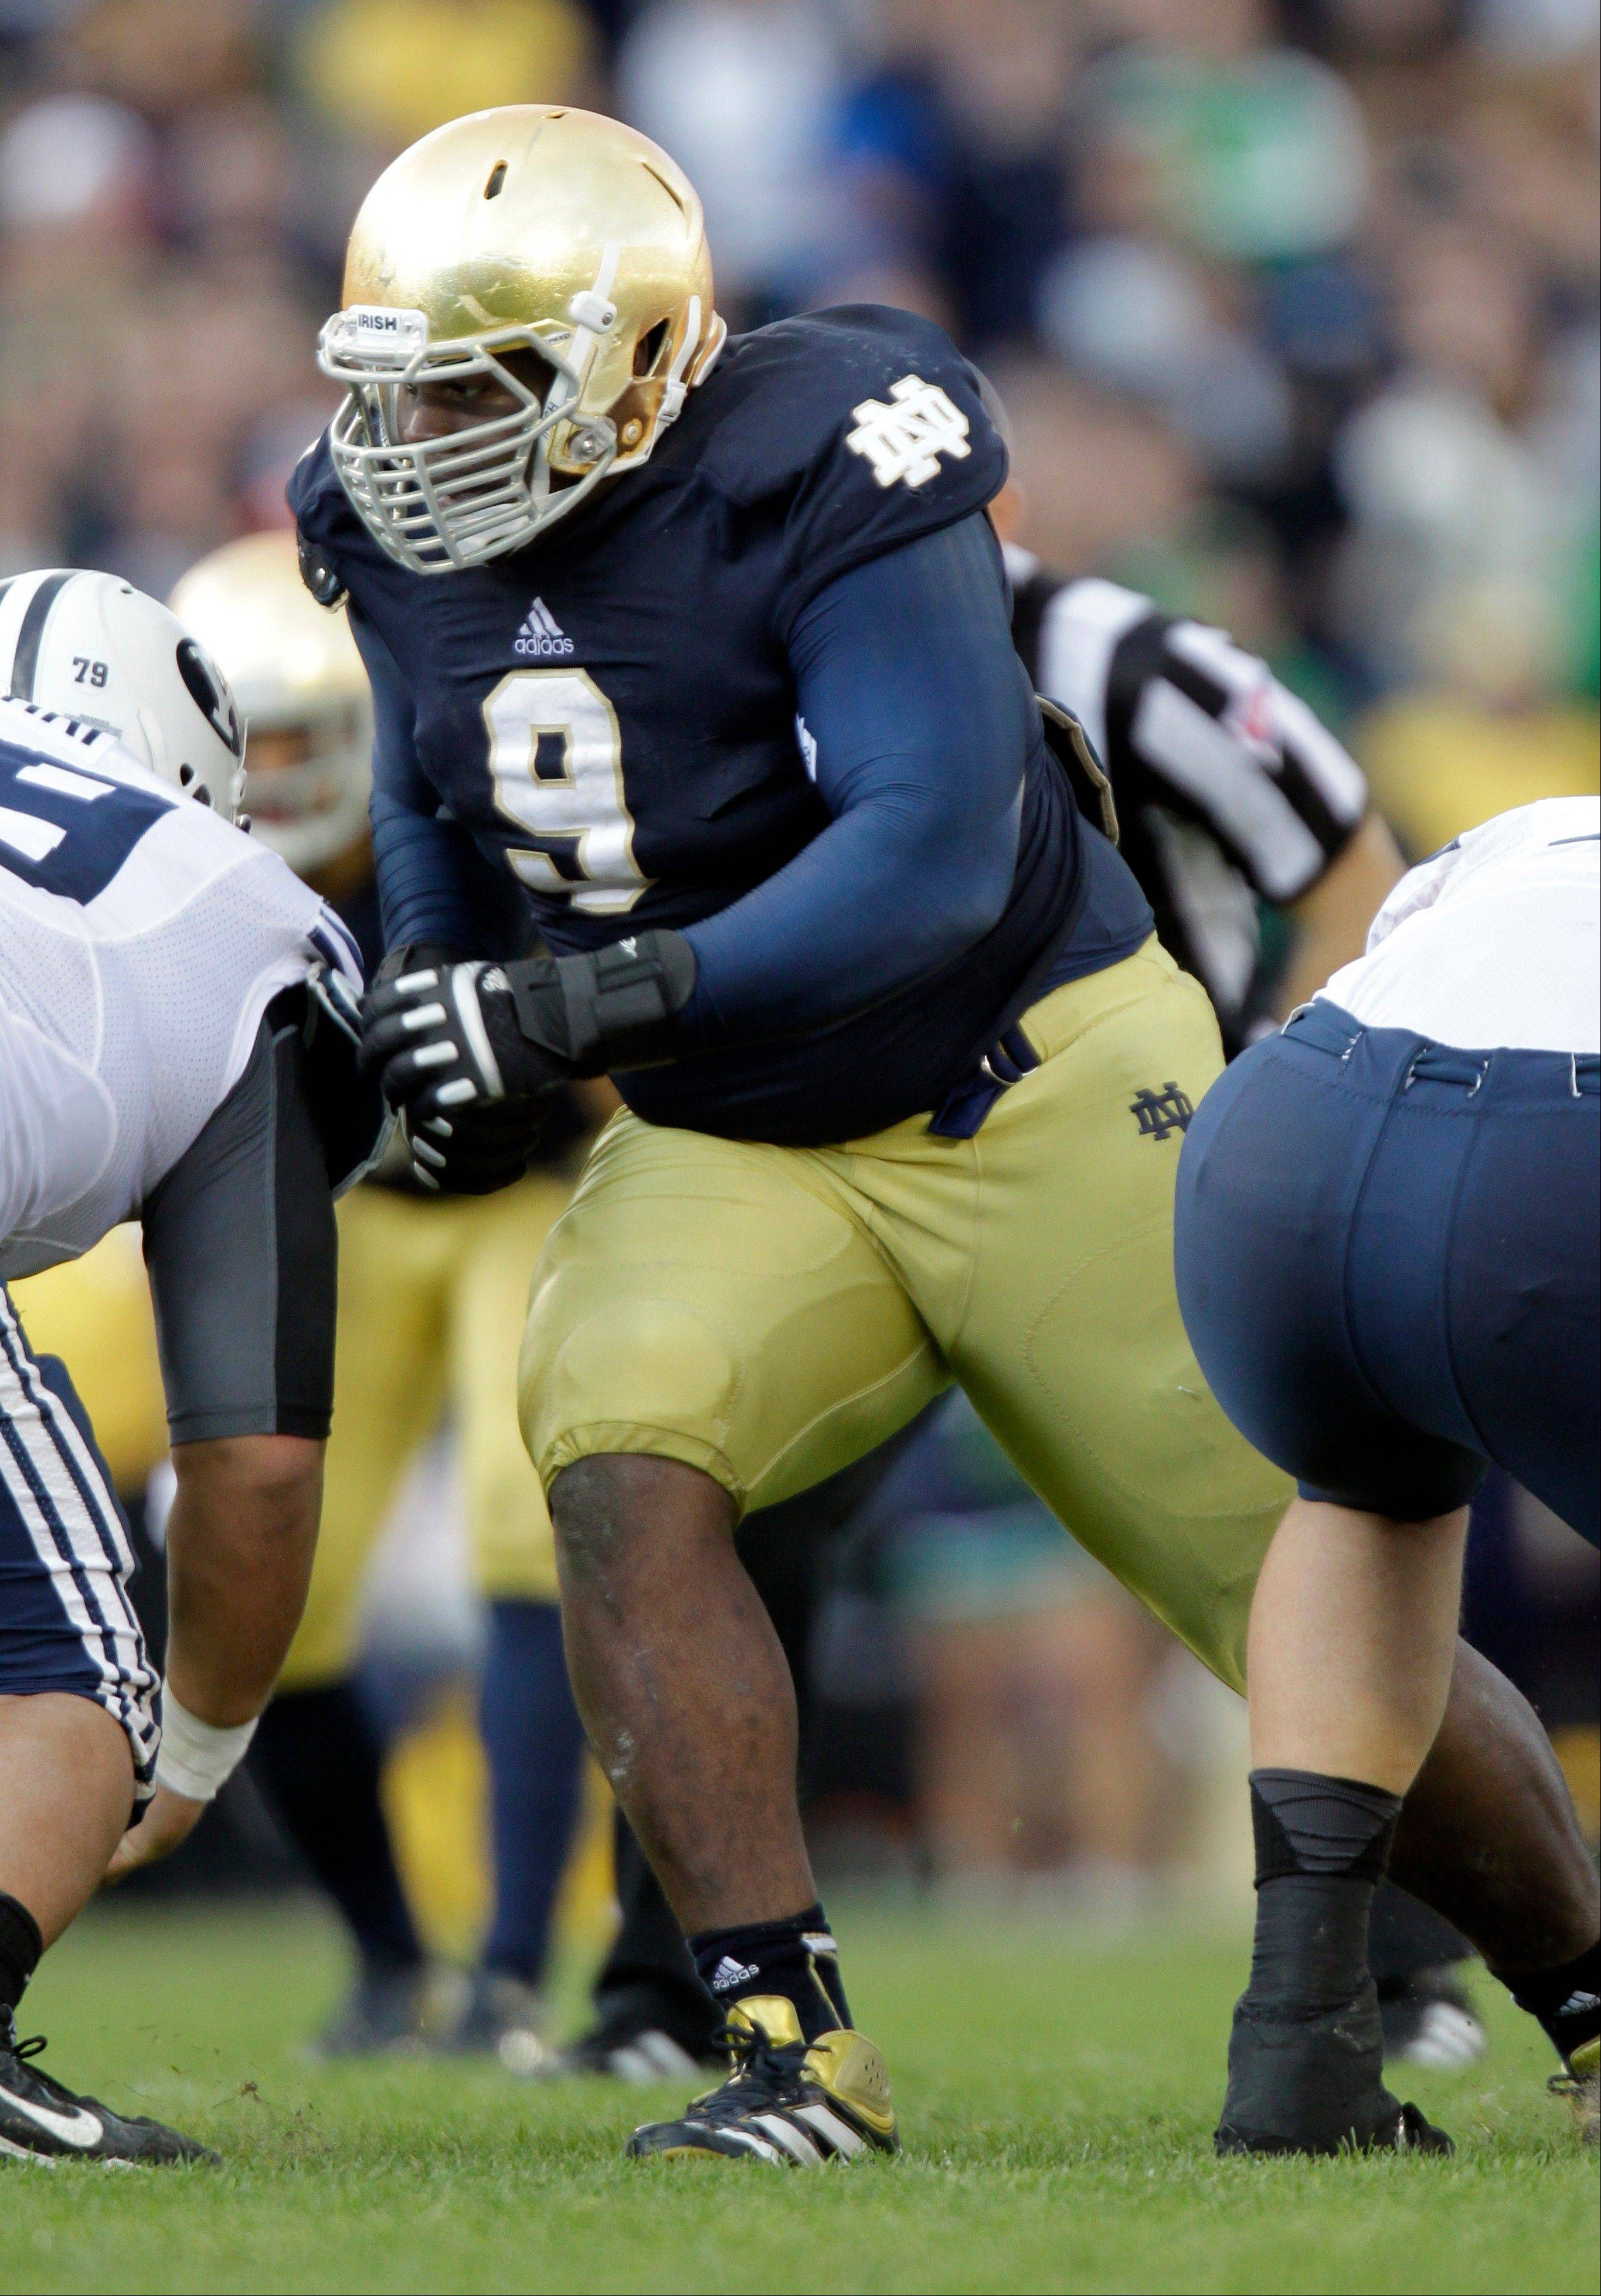 Notre Dame nose guard Nix always at the center of things